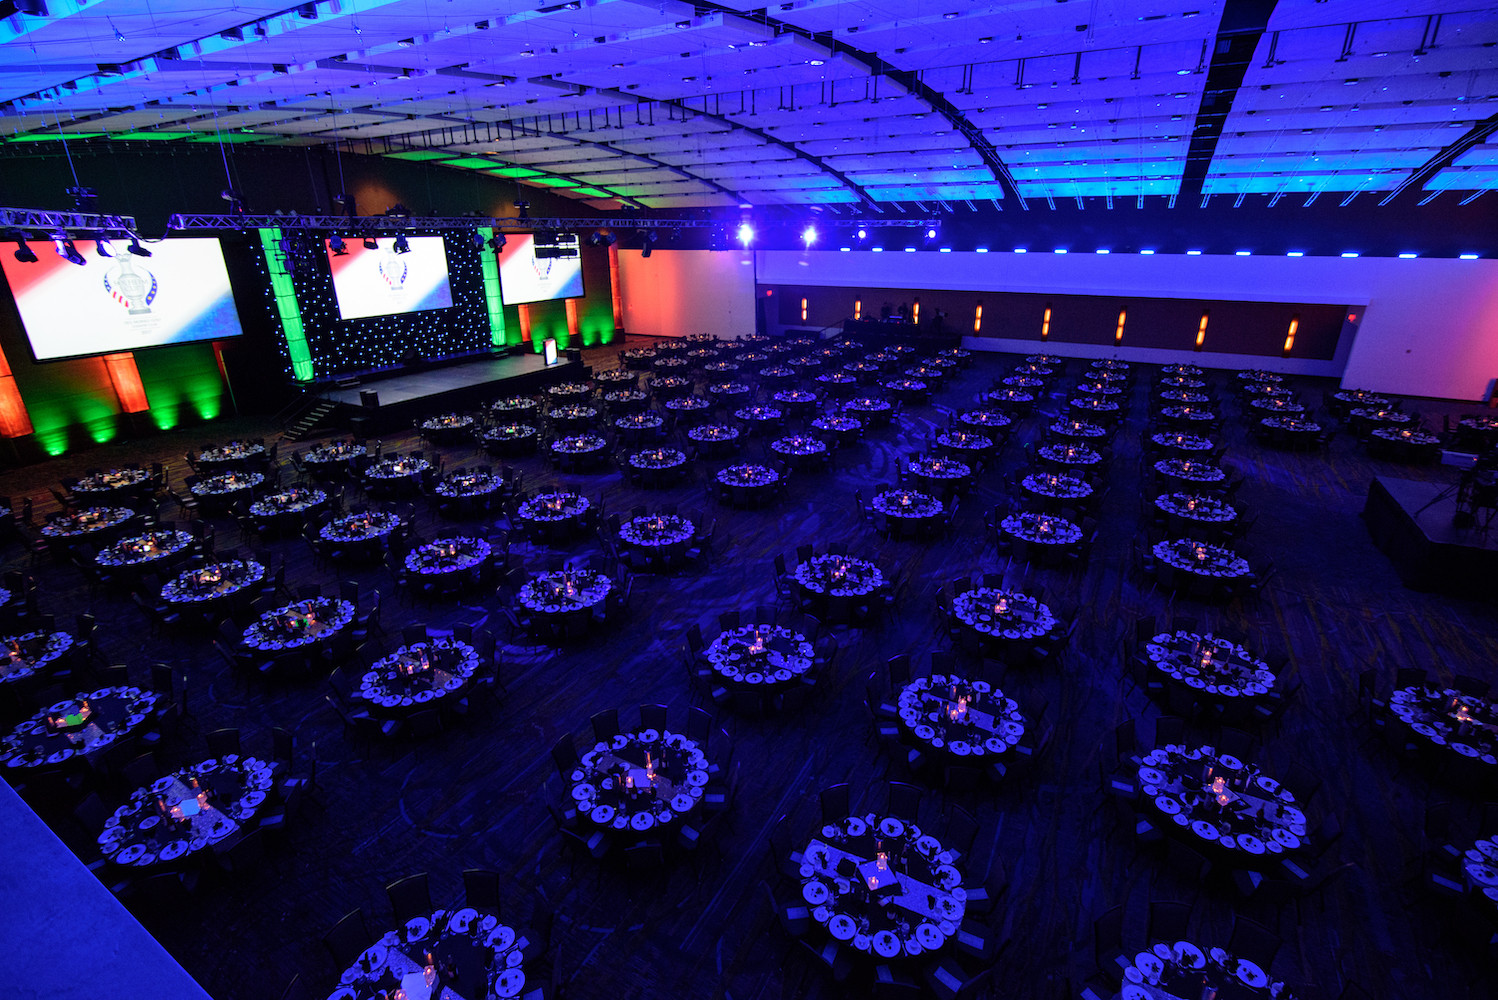 The ballroom at the Iowa Events Center provides spacious, flexible spaces to host charity fundraisers, galas, and more in the state's biggest ballroom.